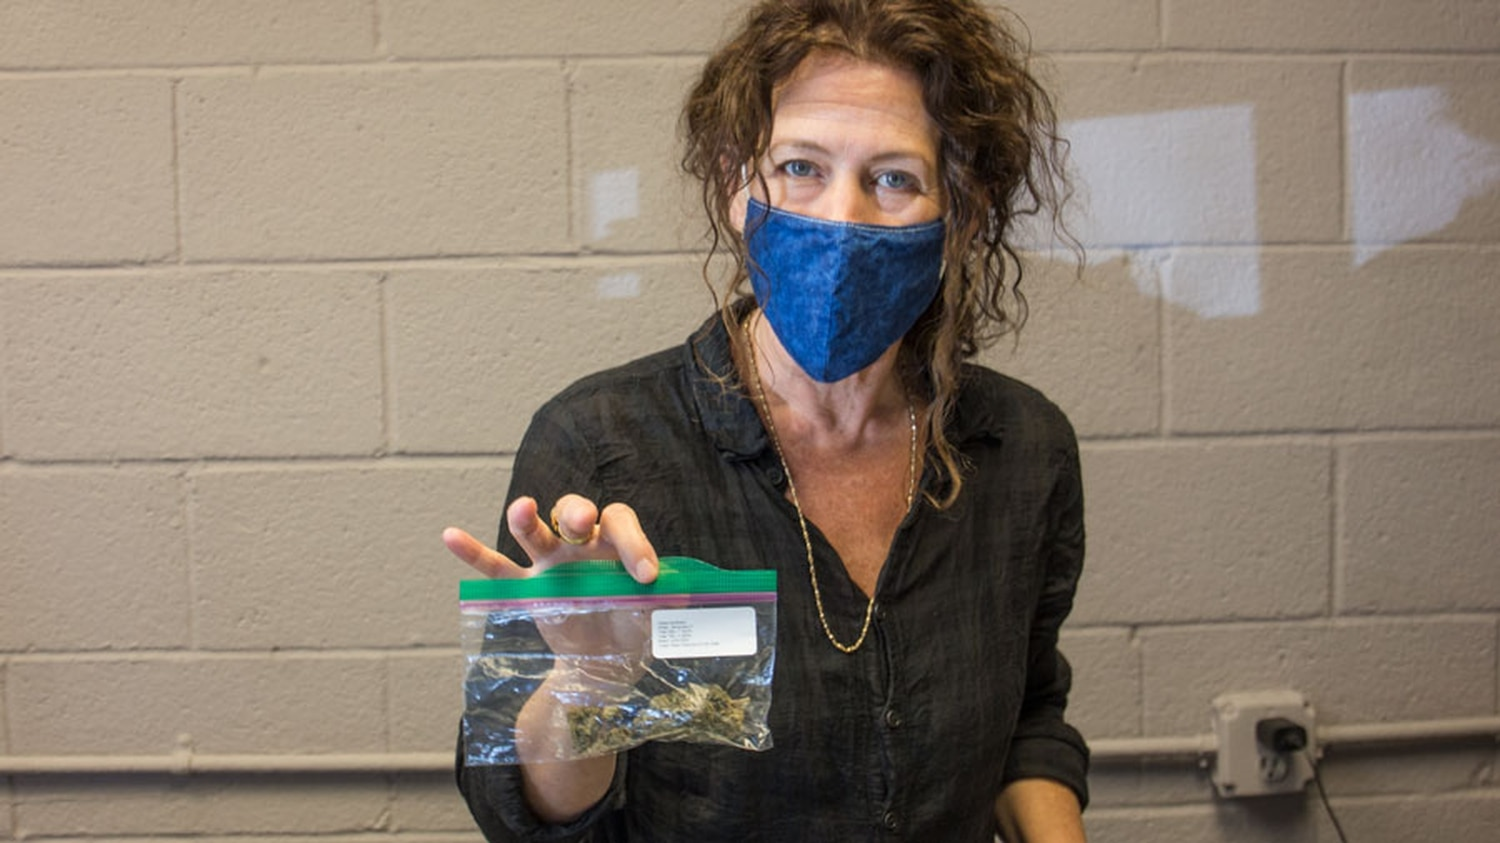 Gyana Basse carries a number of Santa Fe CBD's local products in her Hemp Apotheke.